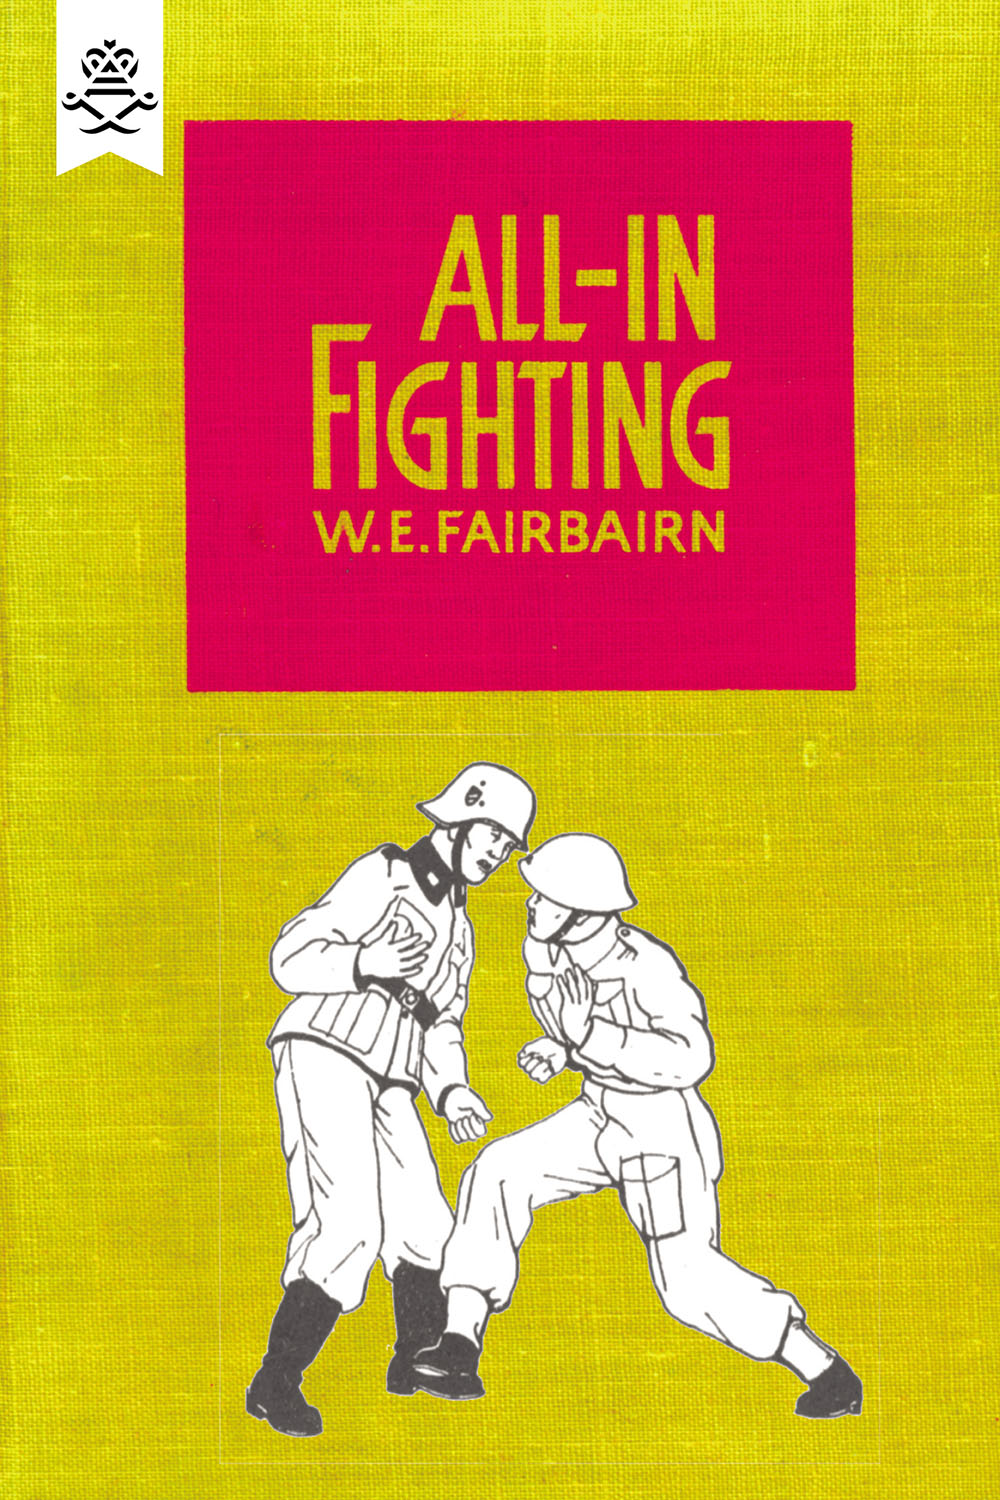 All-in Fighting By: W.E. Fairbairn